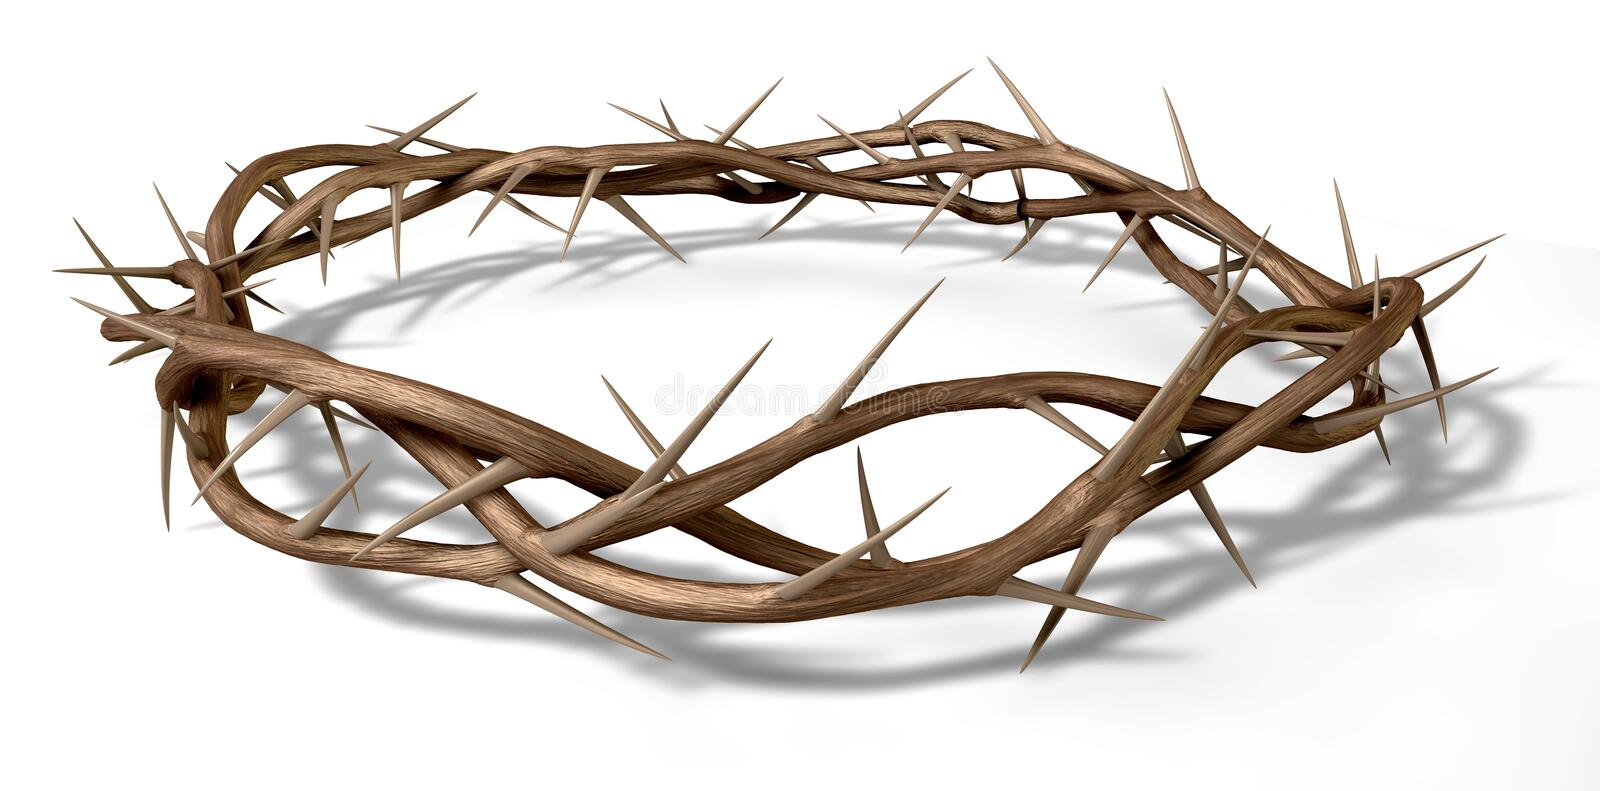 A Crown Of Thorns royalty free stock photos